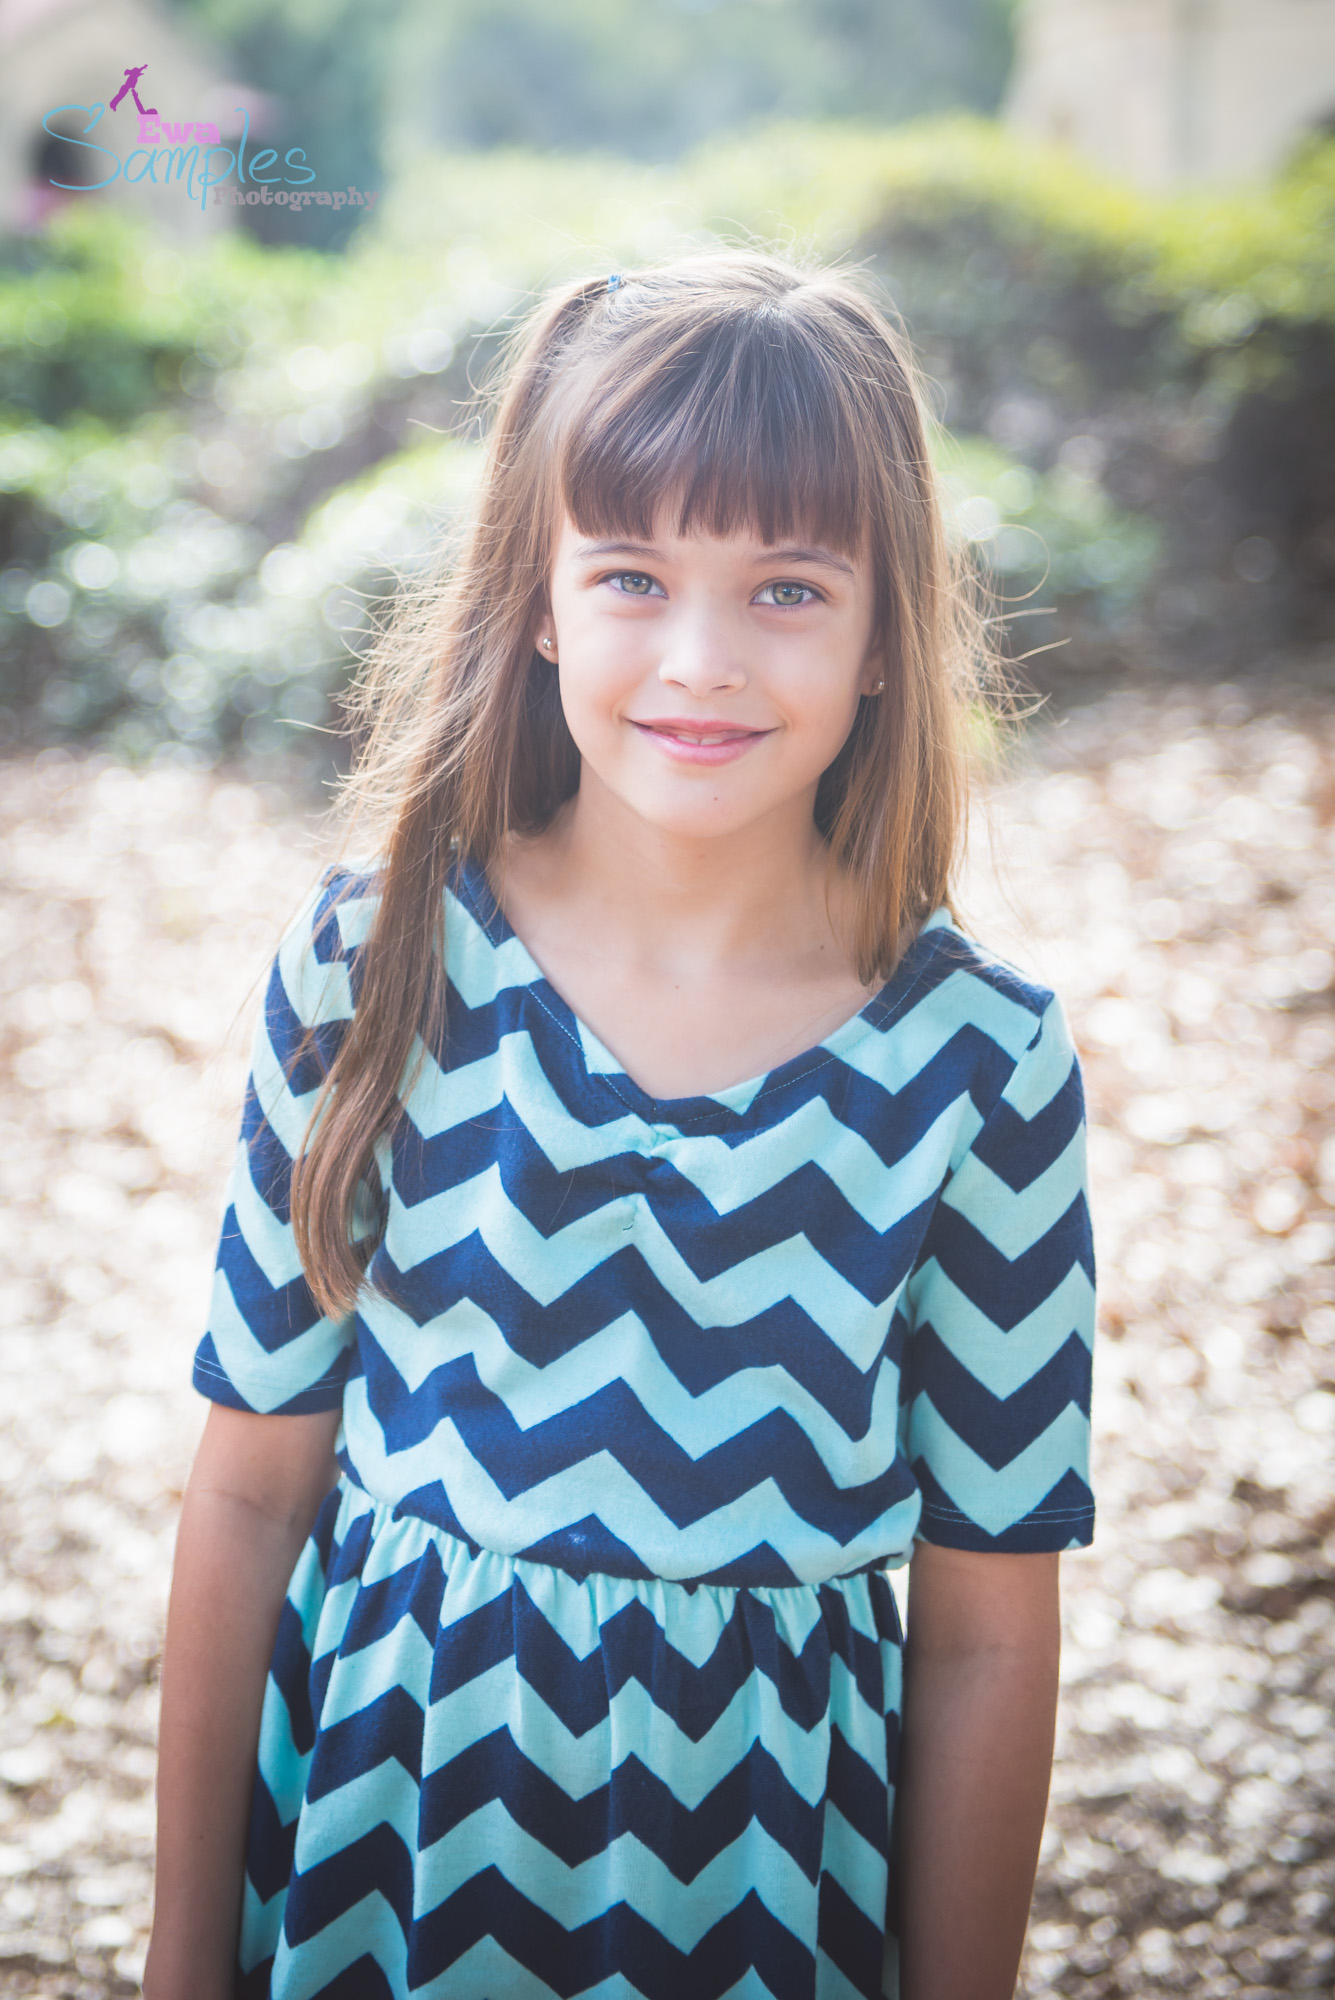 Stanford_family_photography_session-11